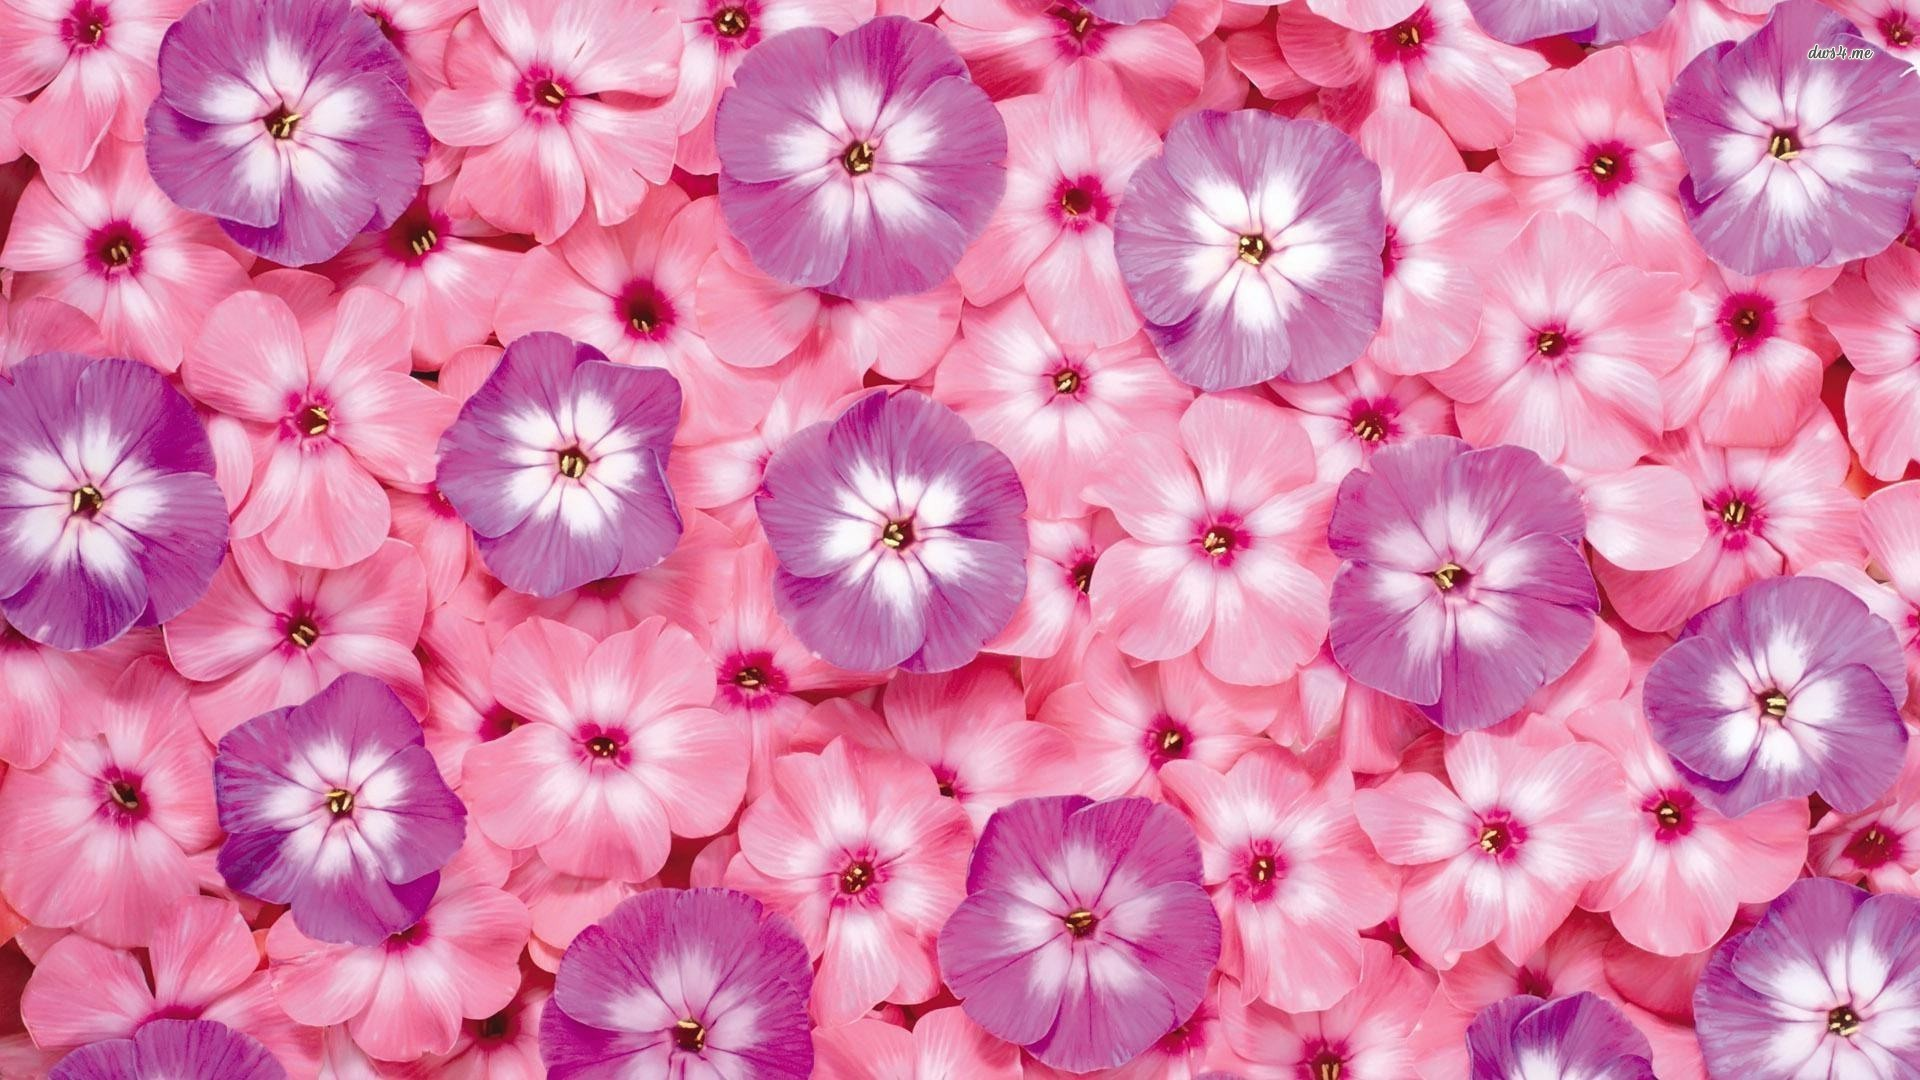 1920x1080 Small pink and purple flowers wallpaper 1280x800 Small pink and purple